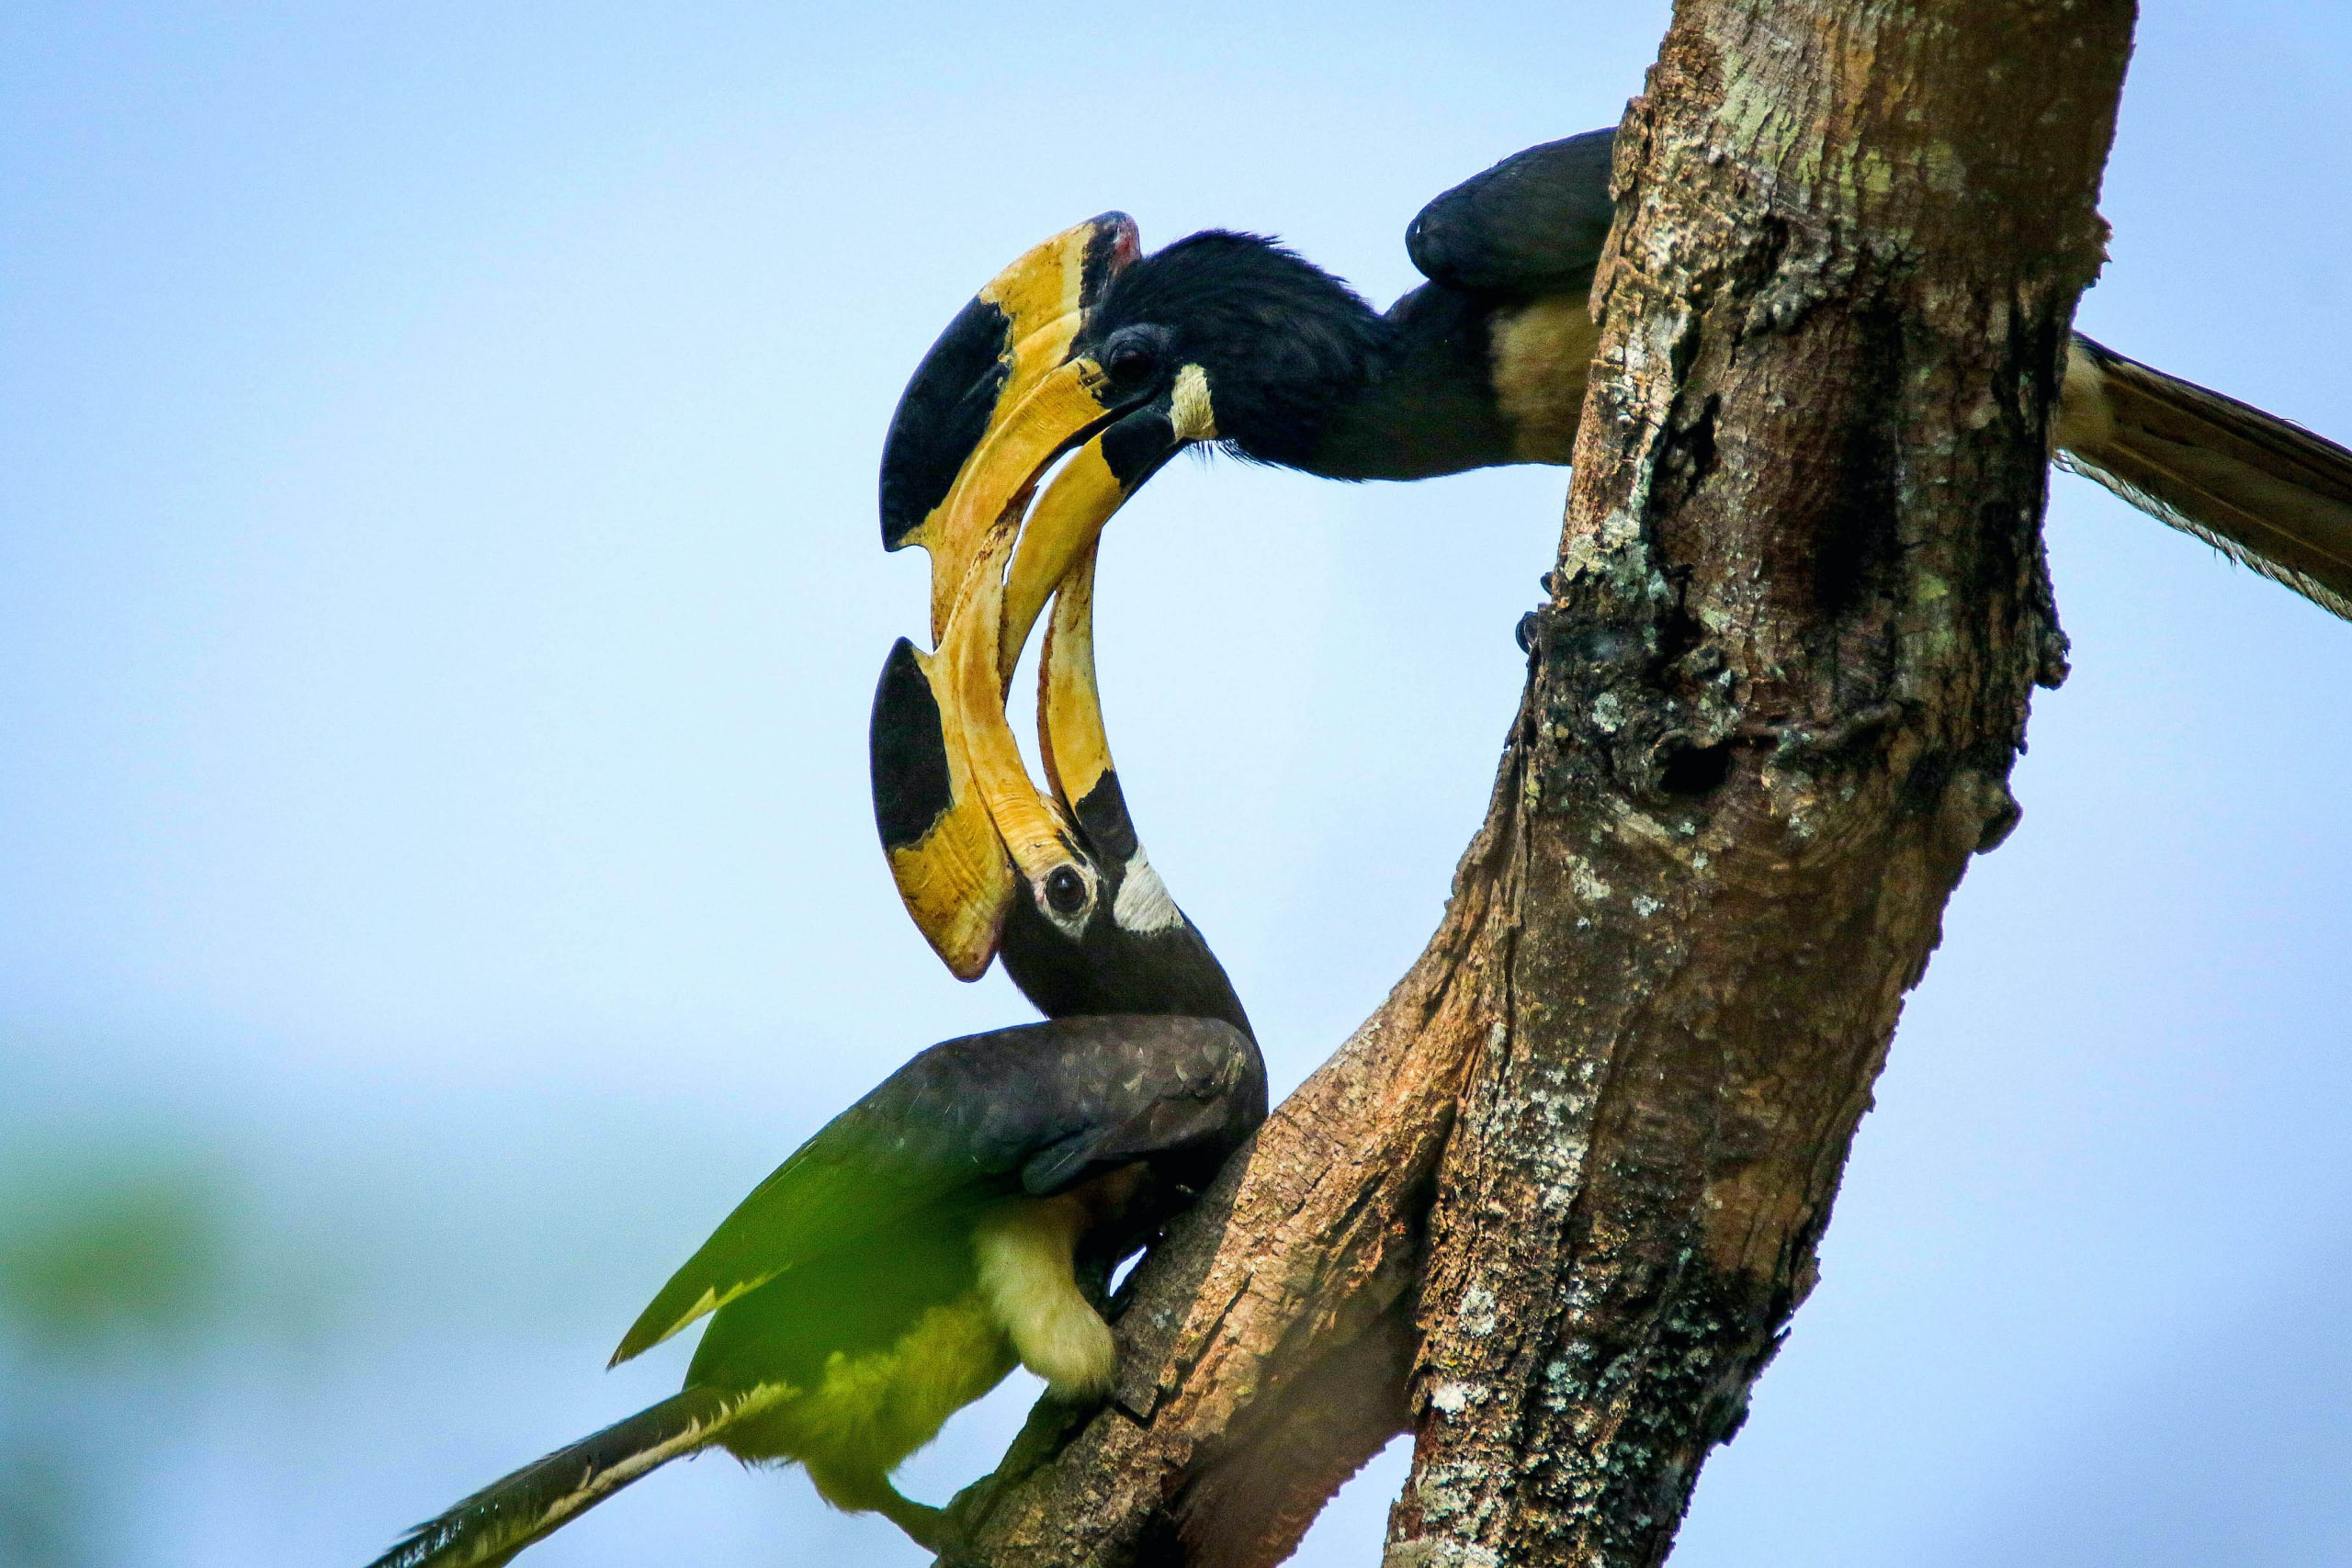 Dandeli in the Western Ghats of Karnataka, where this courting pair was photographed, is one of the best places in India to spot the Malabar pied hornbill. Photo: Vikas patil photography / CC BY-SA 4.0